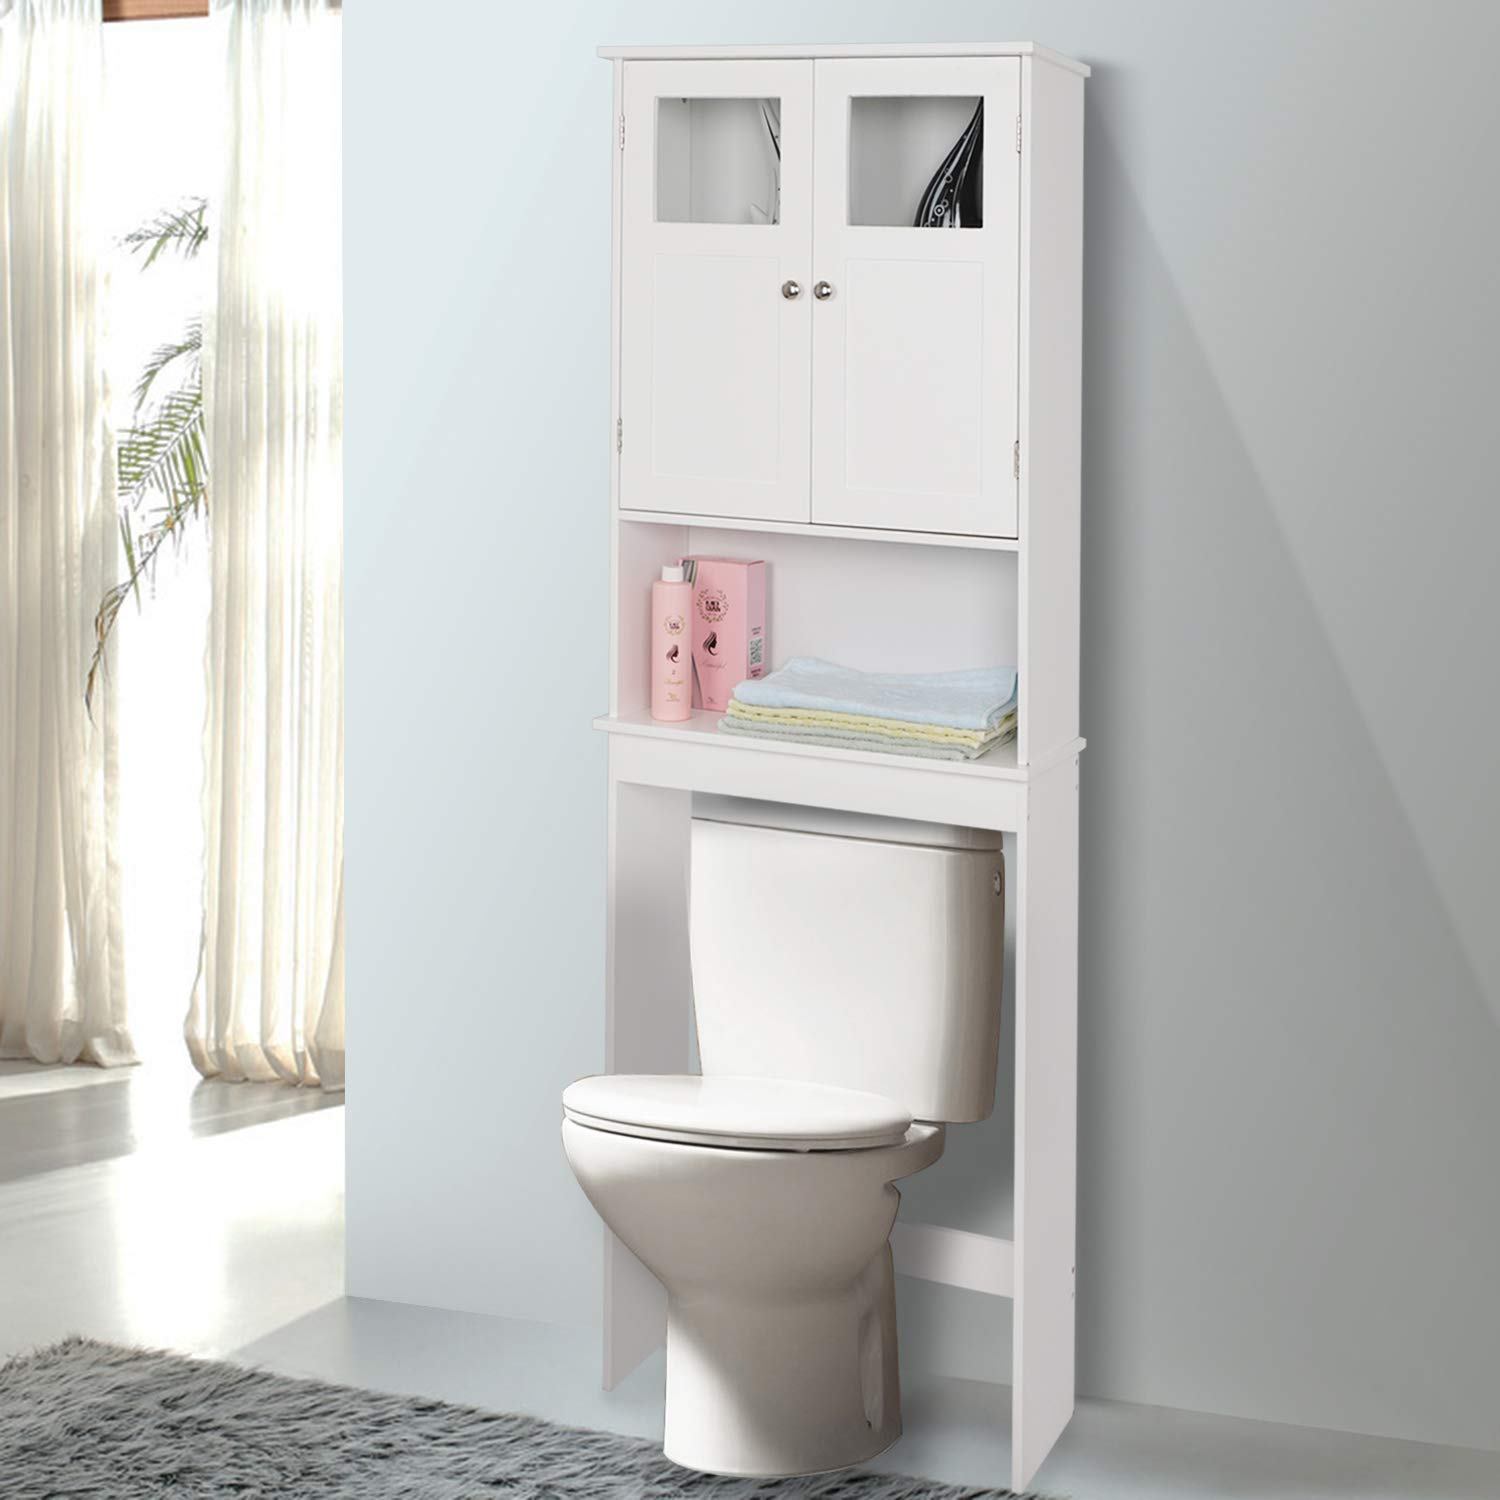 Bonnlo Over Toilet Storage Bathroom Space Saver With Double Door Glass Window Cabinet Tower With Adjustable Shelf White